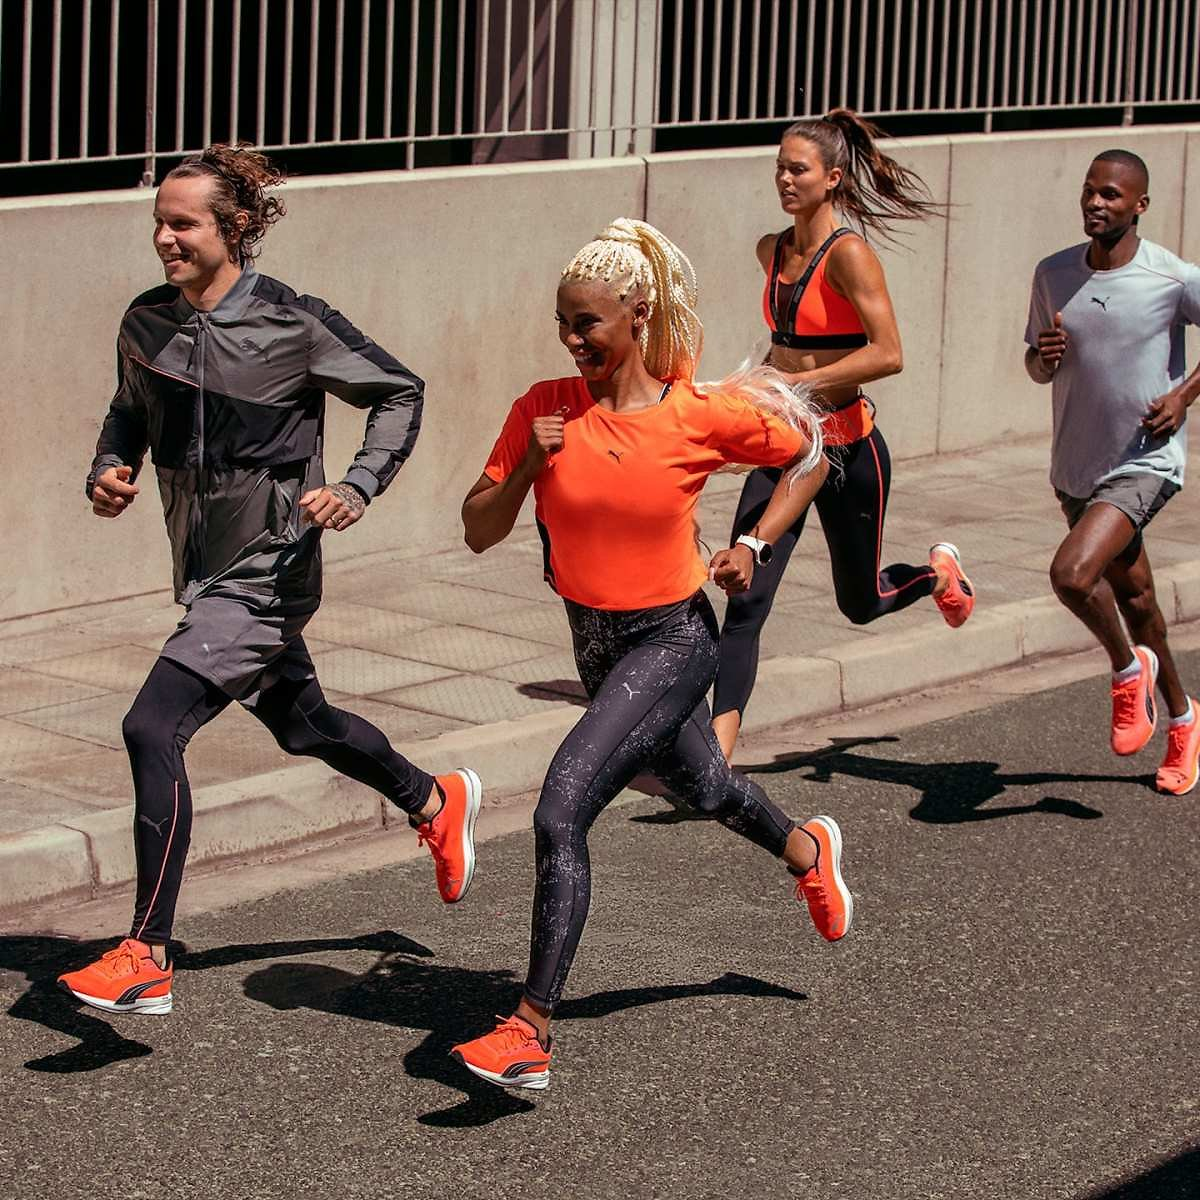 Up to 50% Off Puma Outlet Style + extra 20% Off